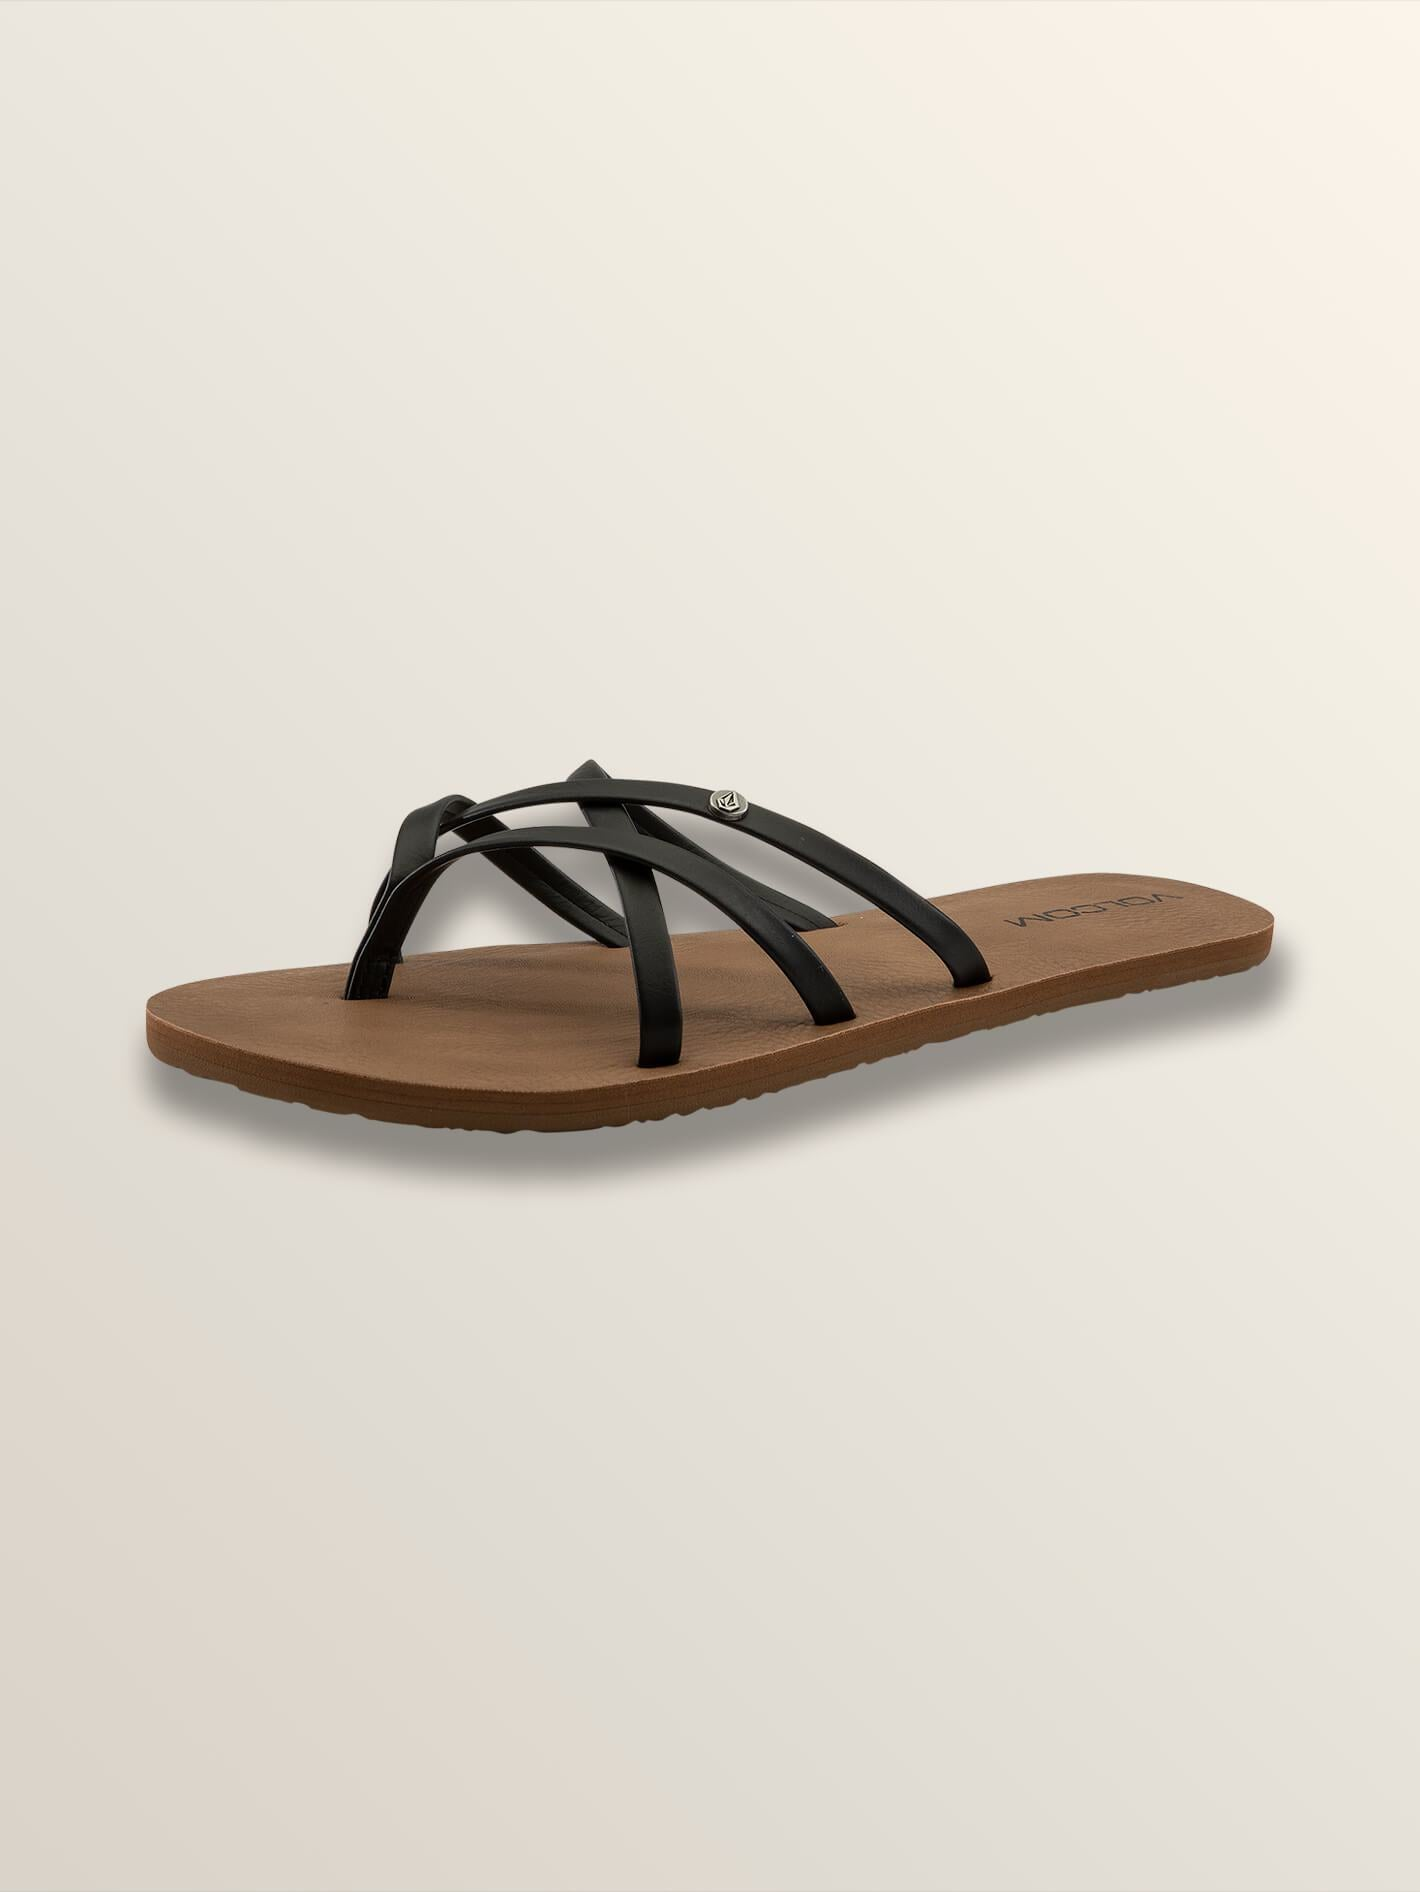 d7ea5f387fede New School Sandals - Black